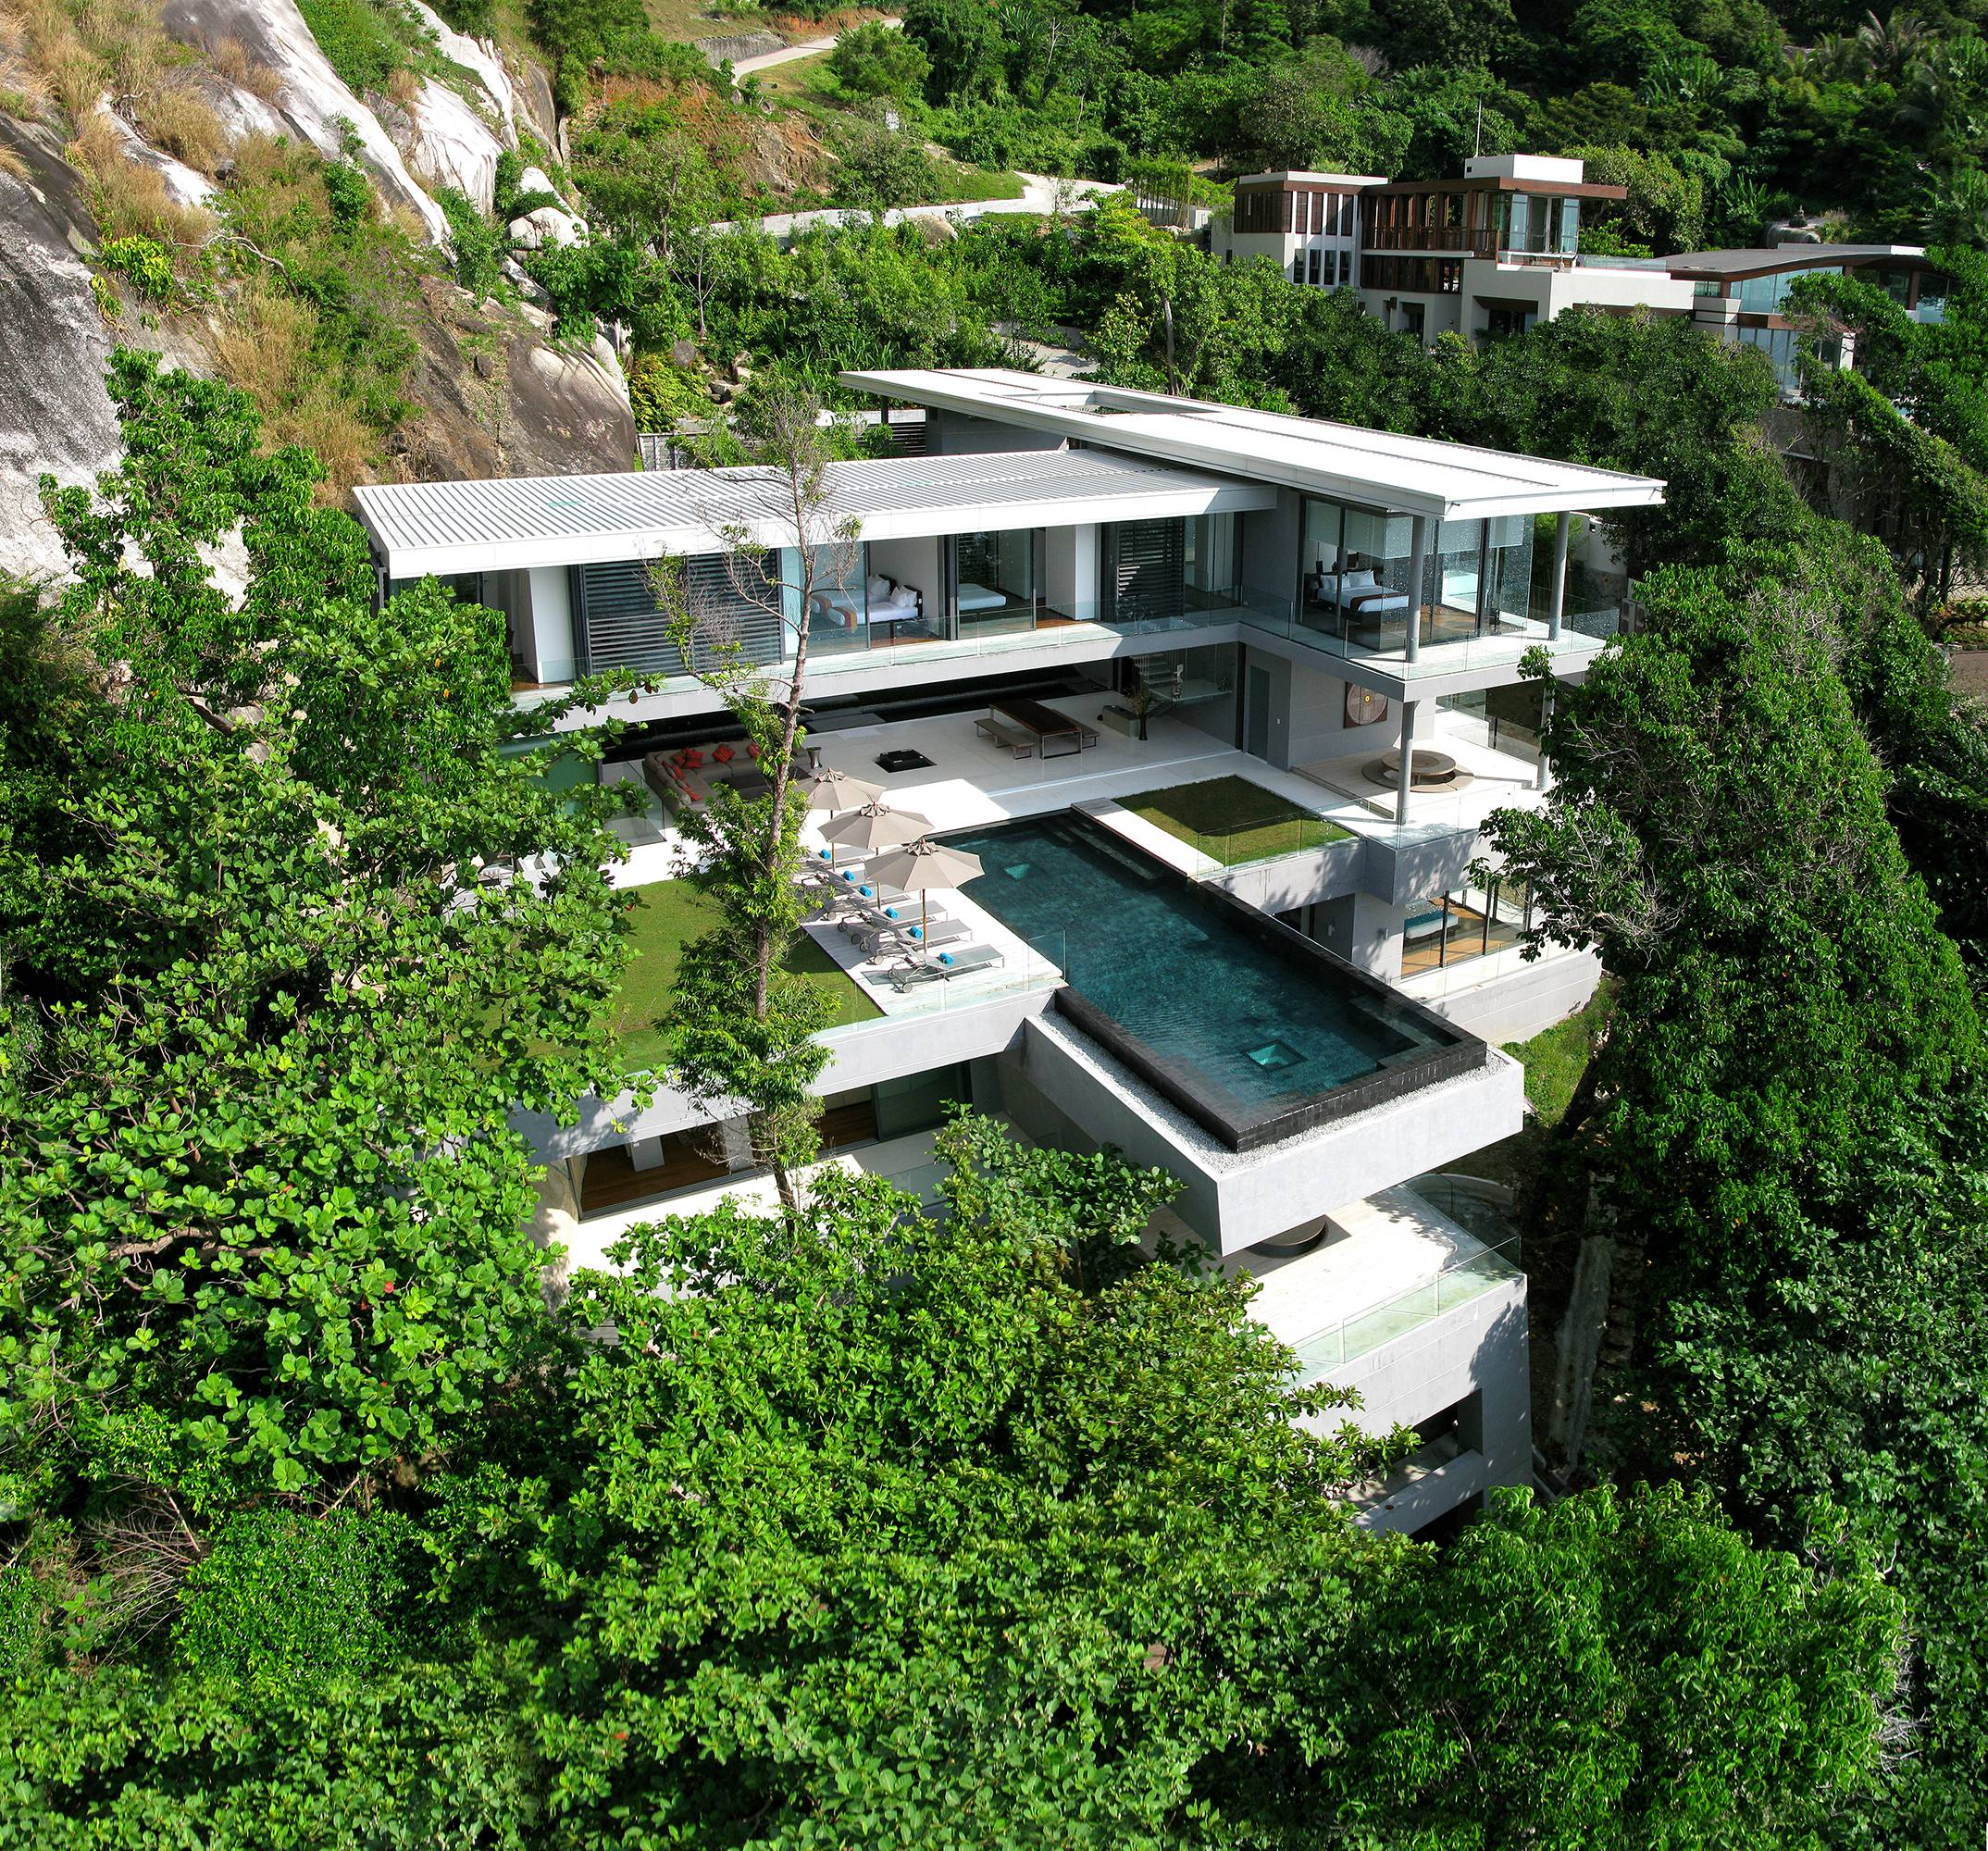 Amazing Seacliff Villa Amanzi in Phuket, Thailand by Architect Firm Original Vision Studio, luxury houses